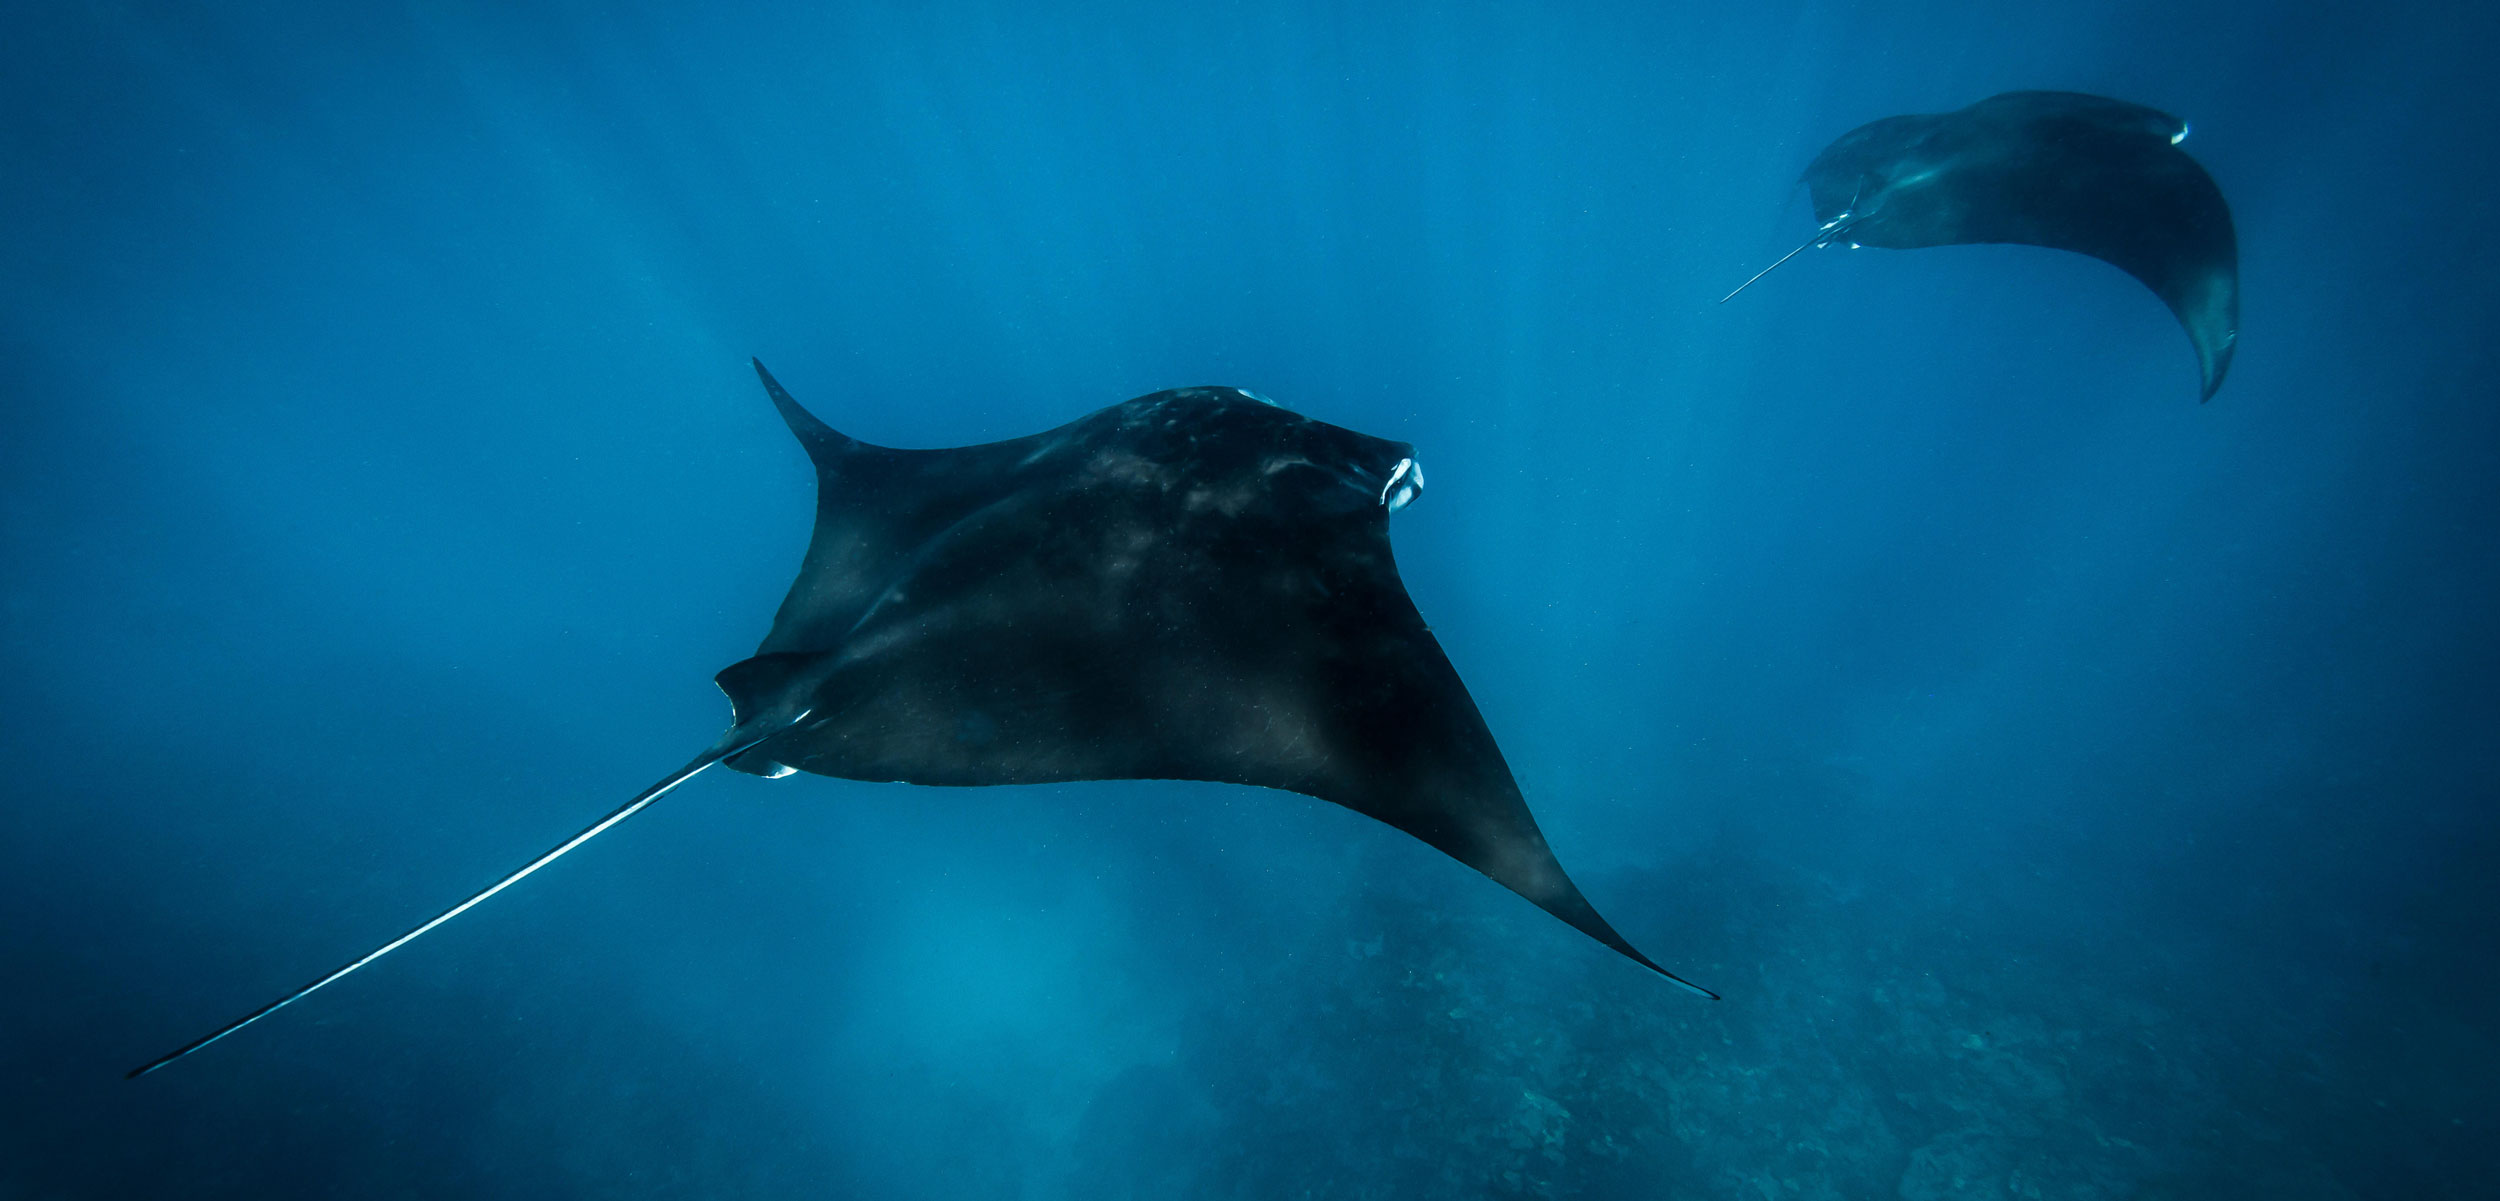 Two manta rays swim in the waters off Exmouth, Western Australia